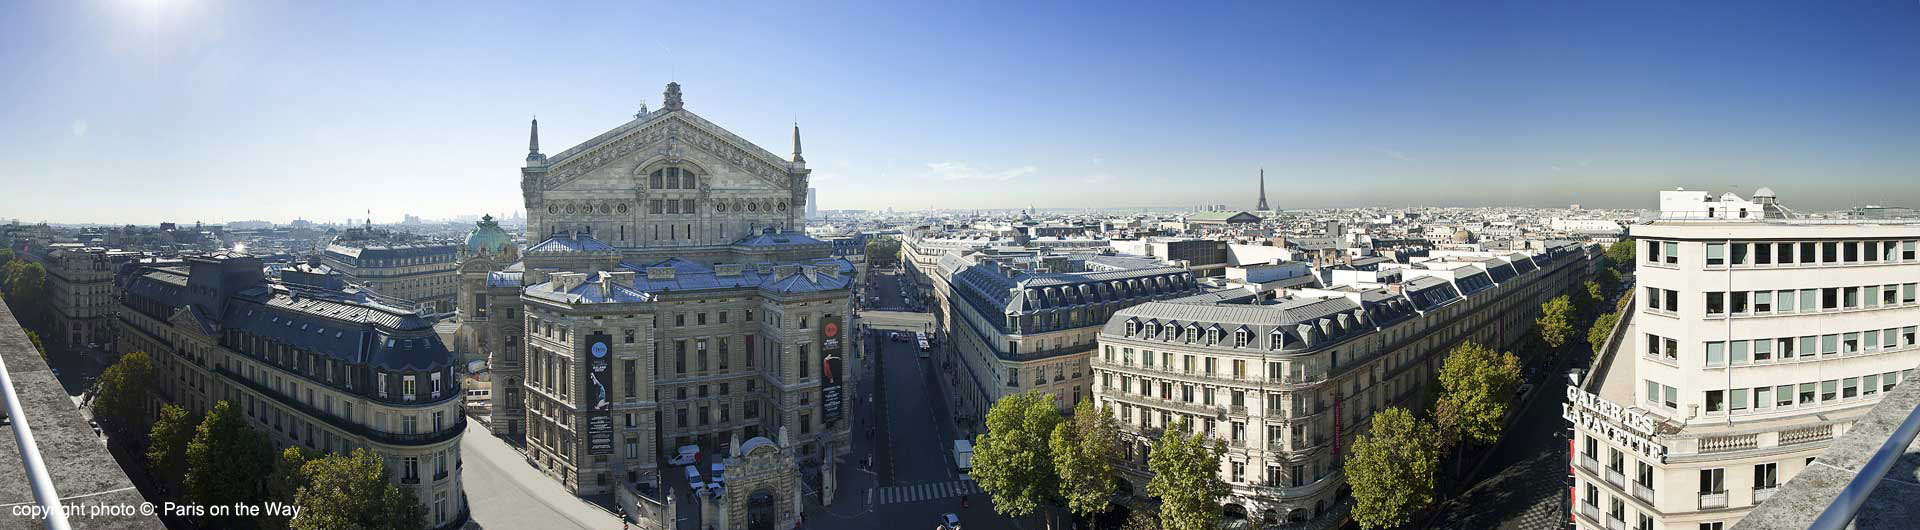 PANORAMIC VIEW OVER THE PARIS ROOFTOPS